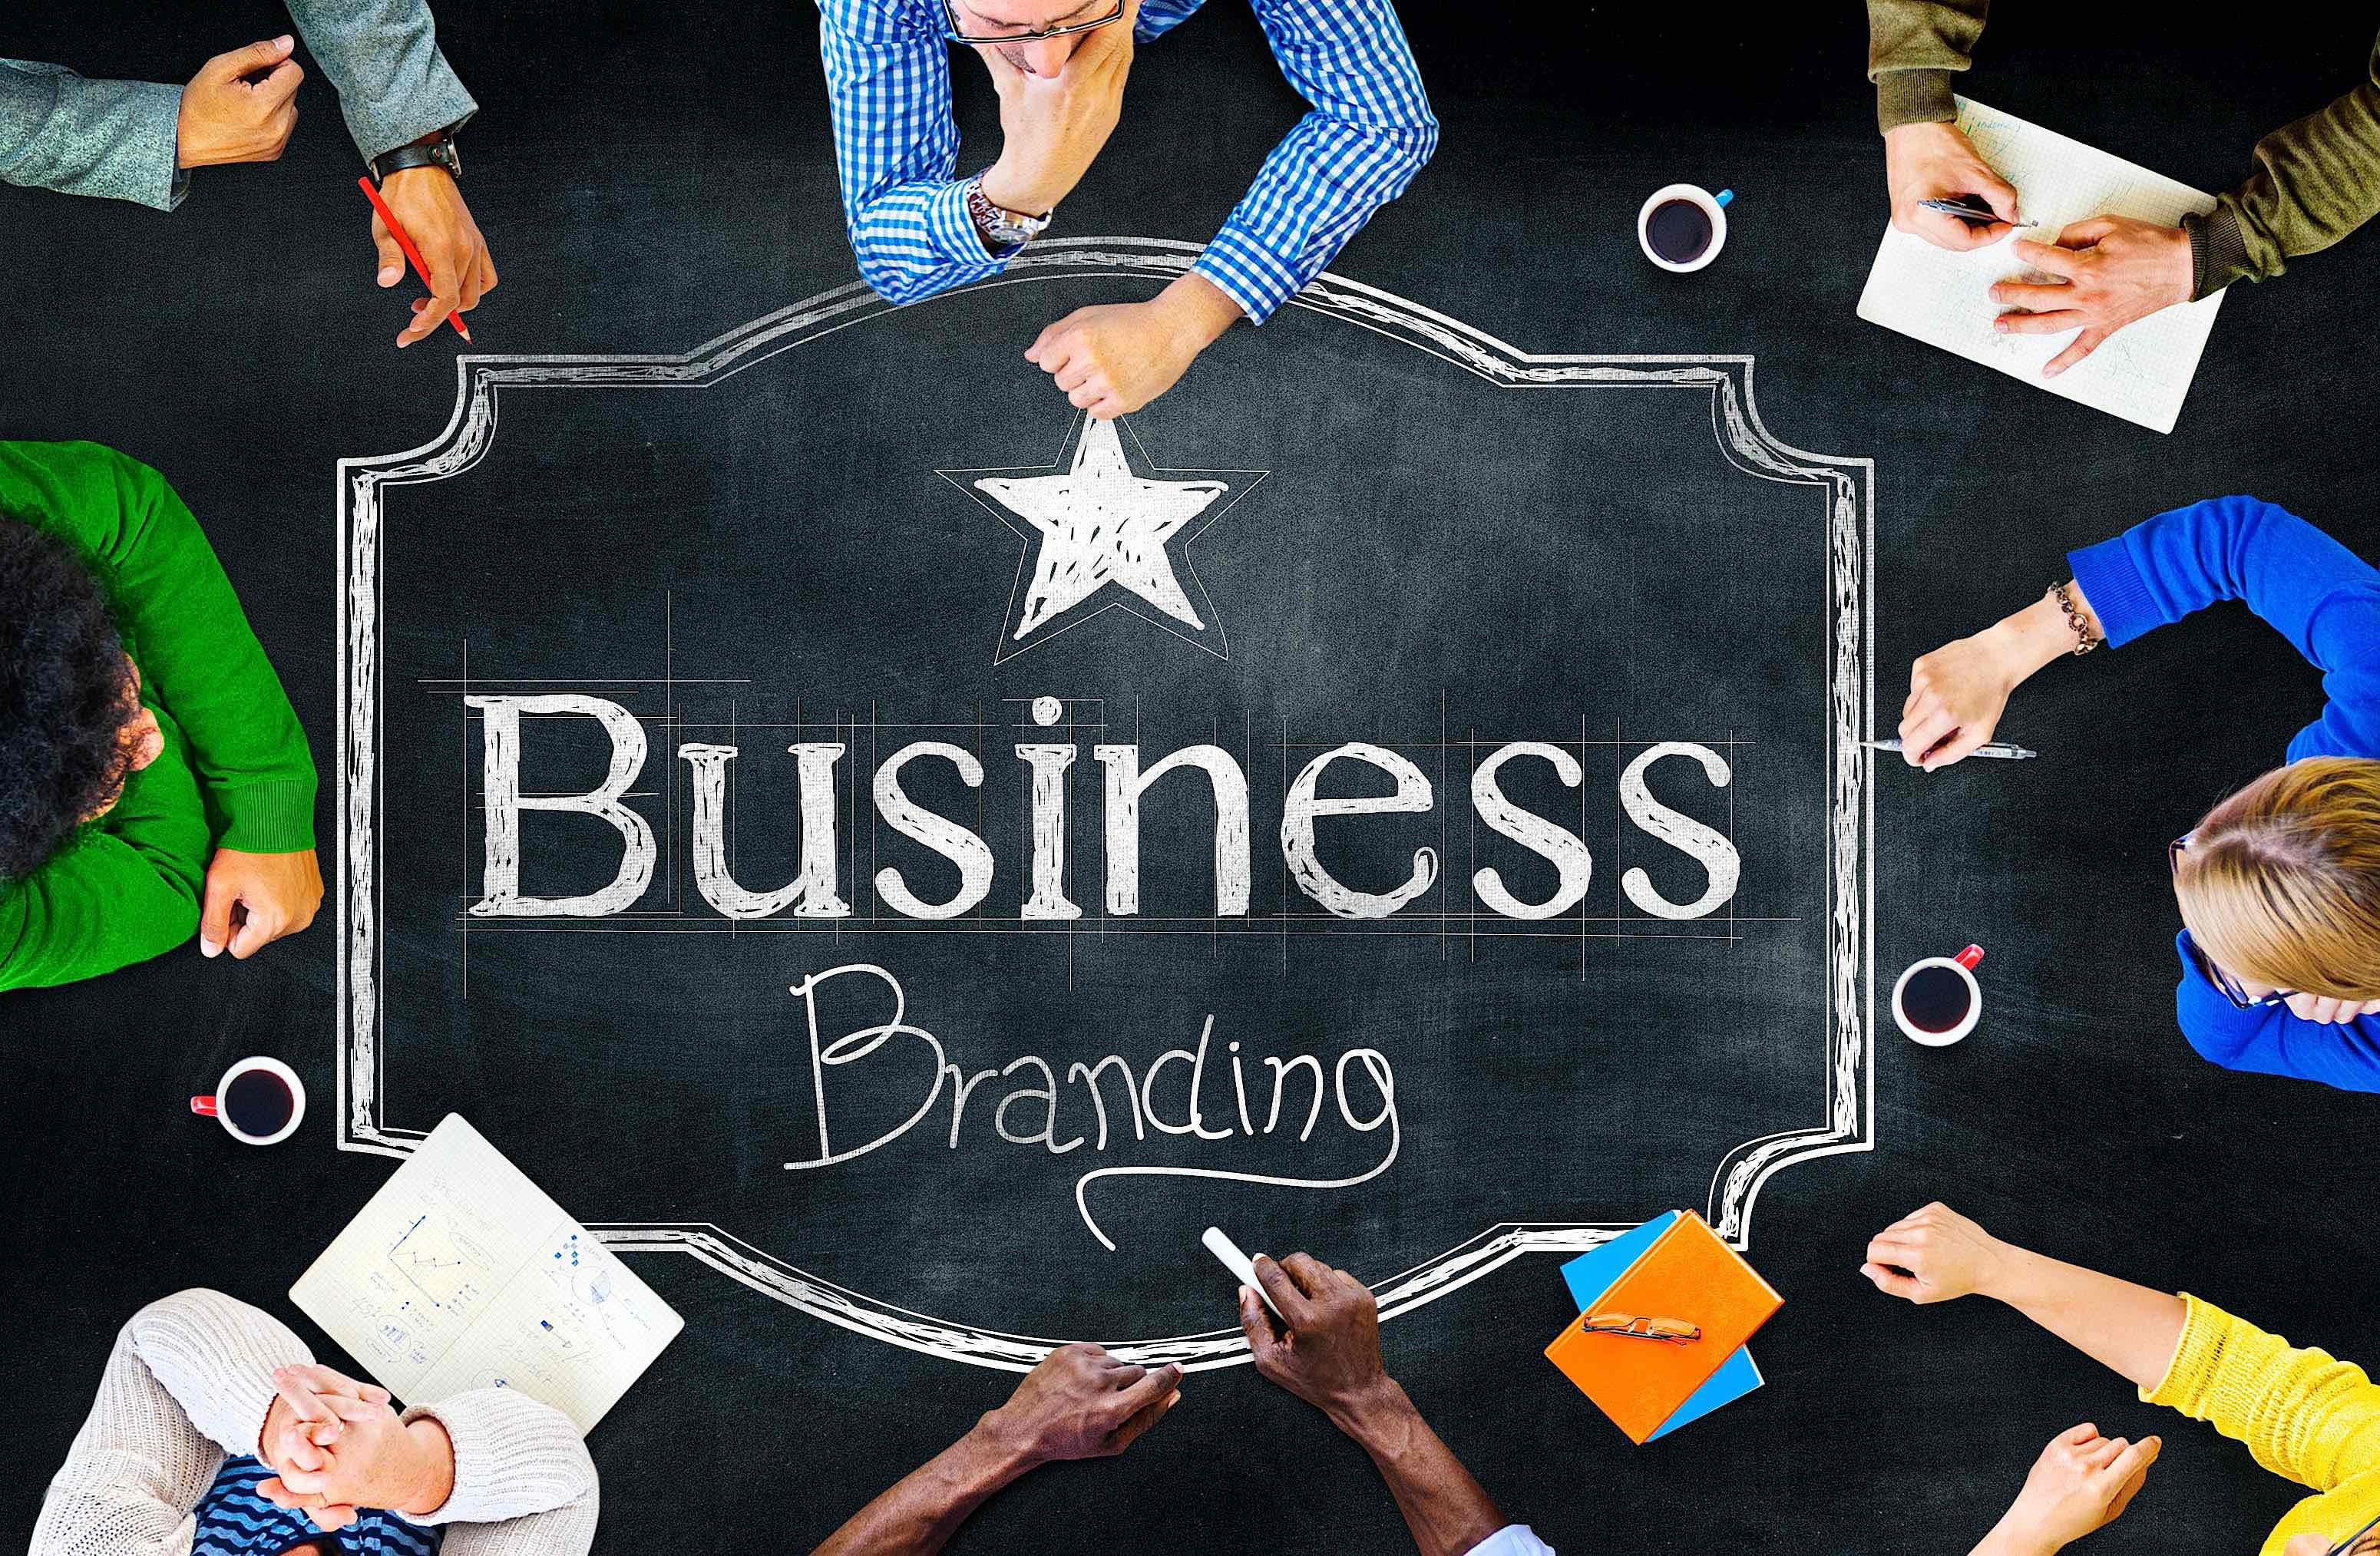 5 Simple Tips for Coming Up with Creative Business Names